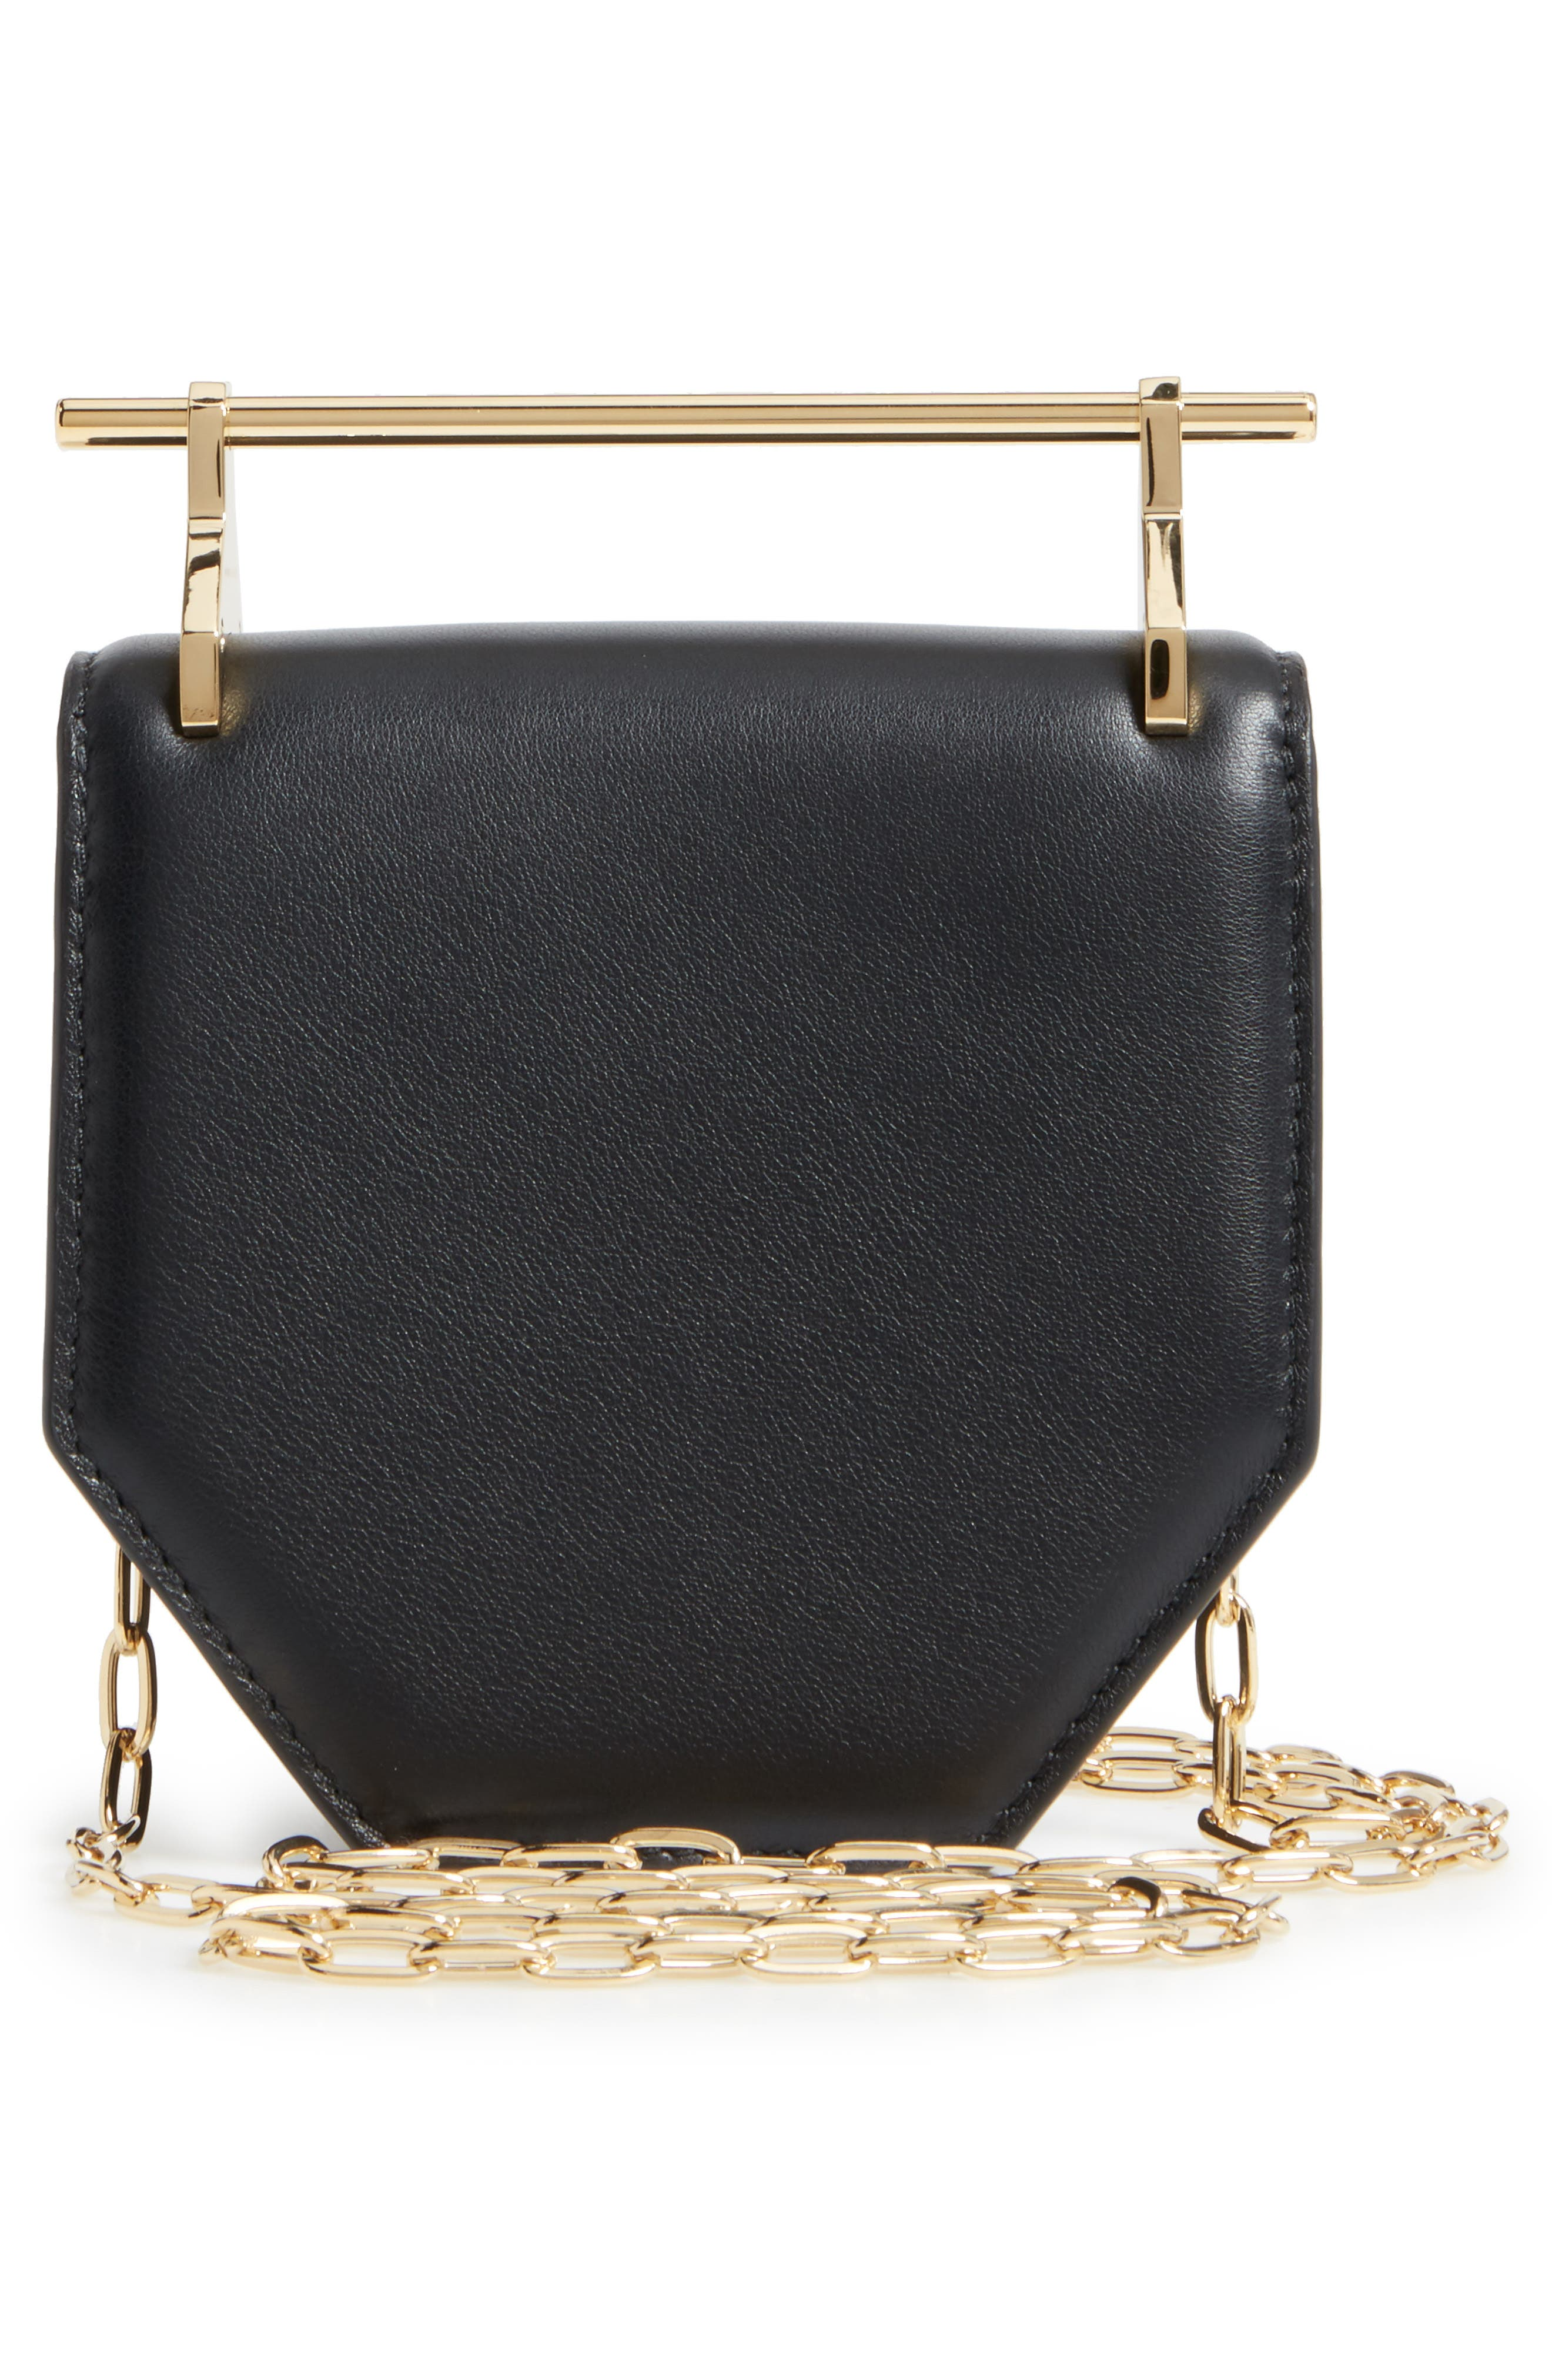 Mini Amor Fati Single Calfskin Leather Shoulder Bag,                             Alternate thumbnail 3, color,                             Black/ Gold